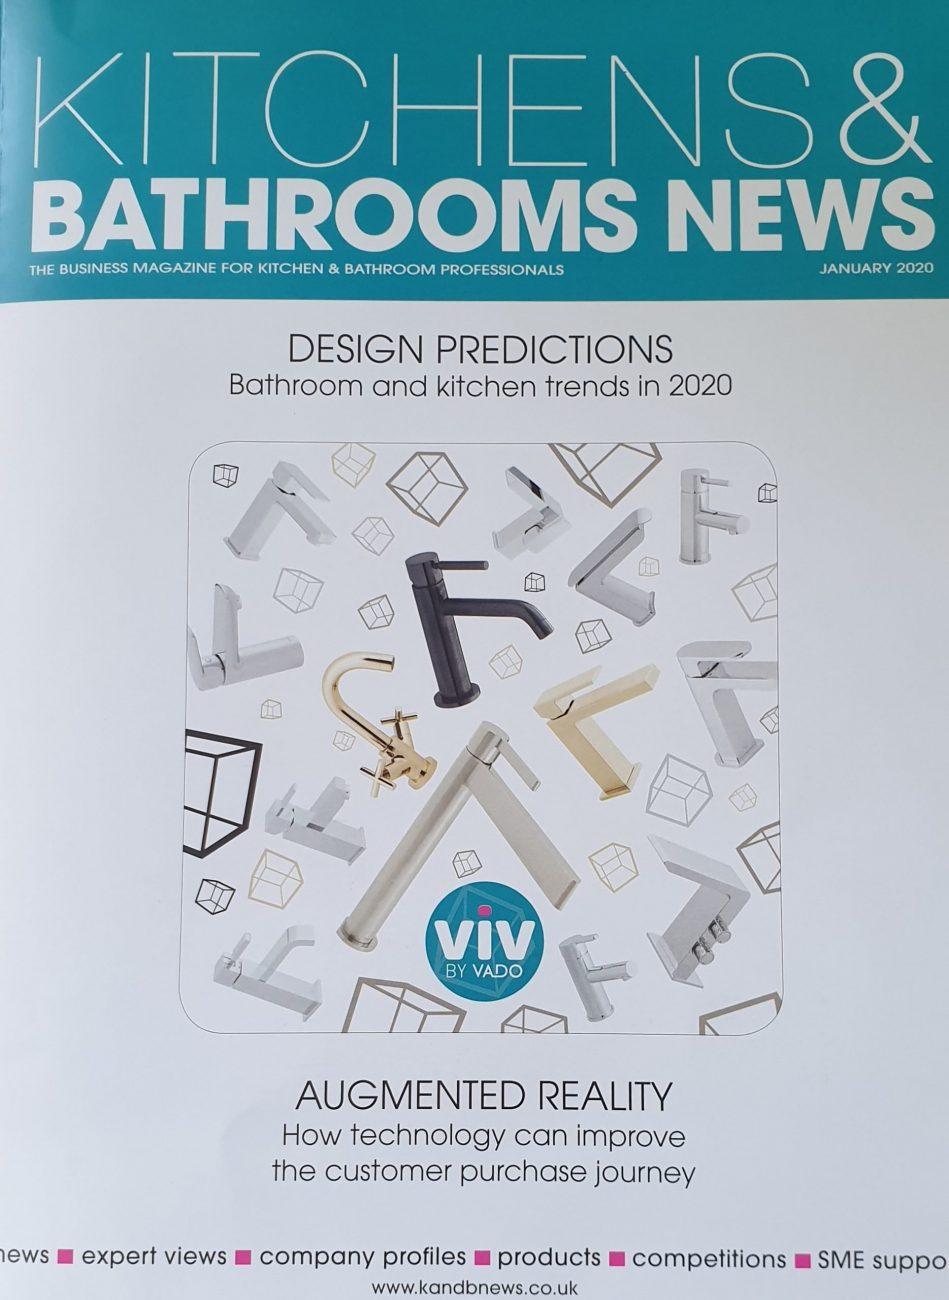 Kitchens & Bathrooms News magazine front cover